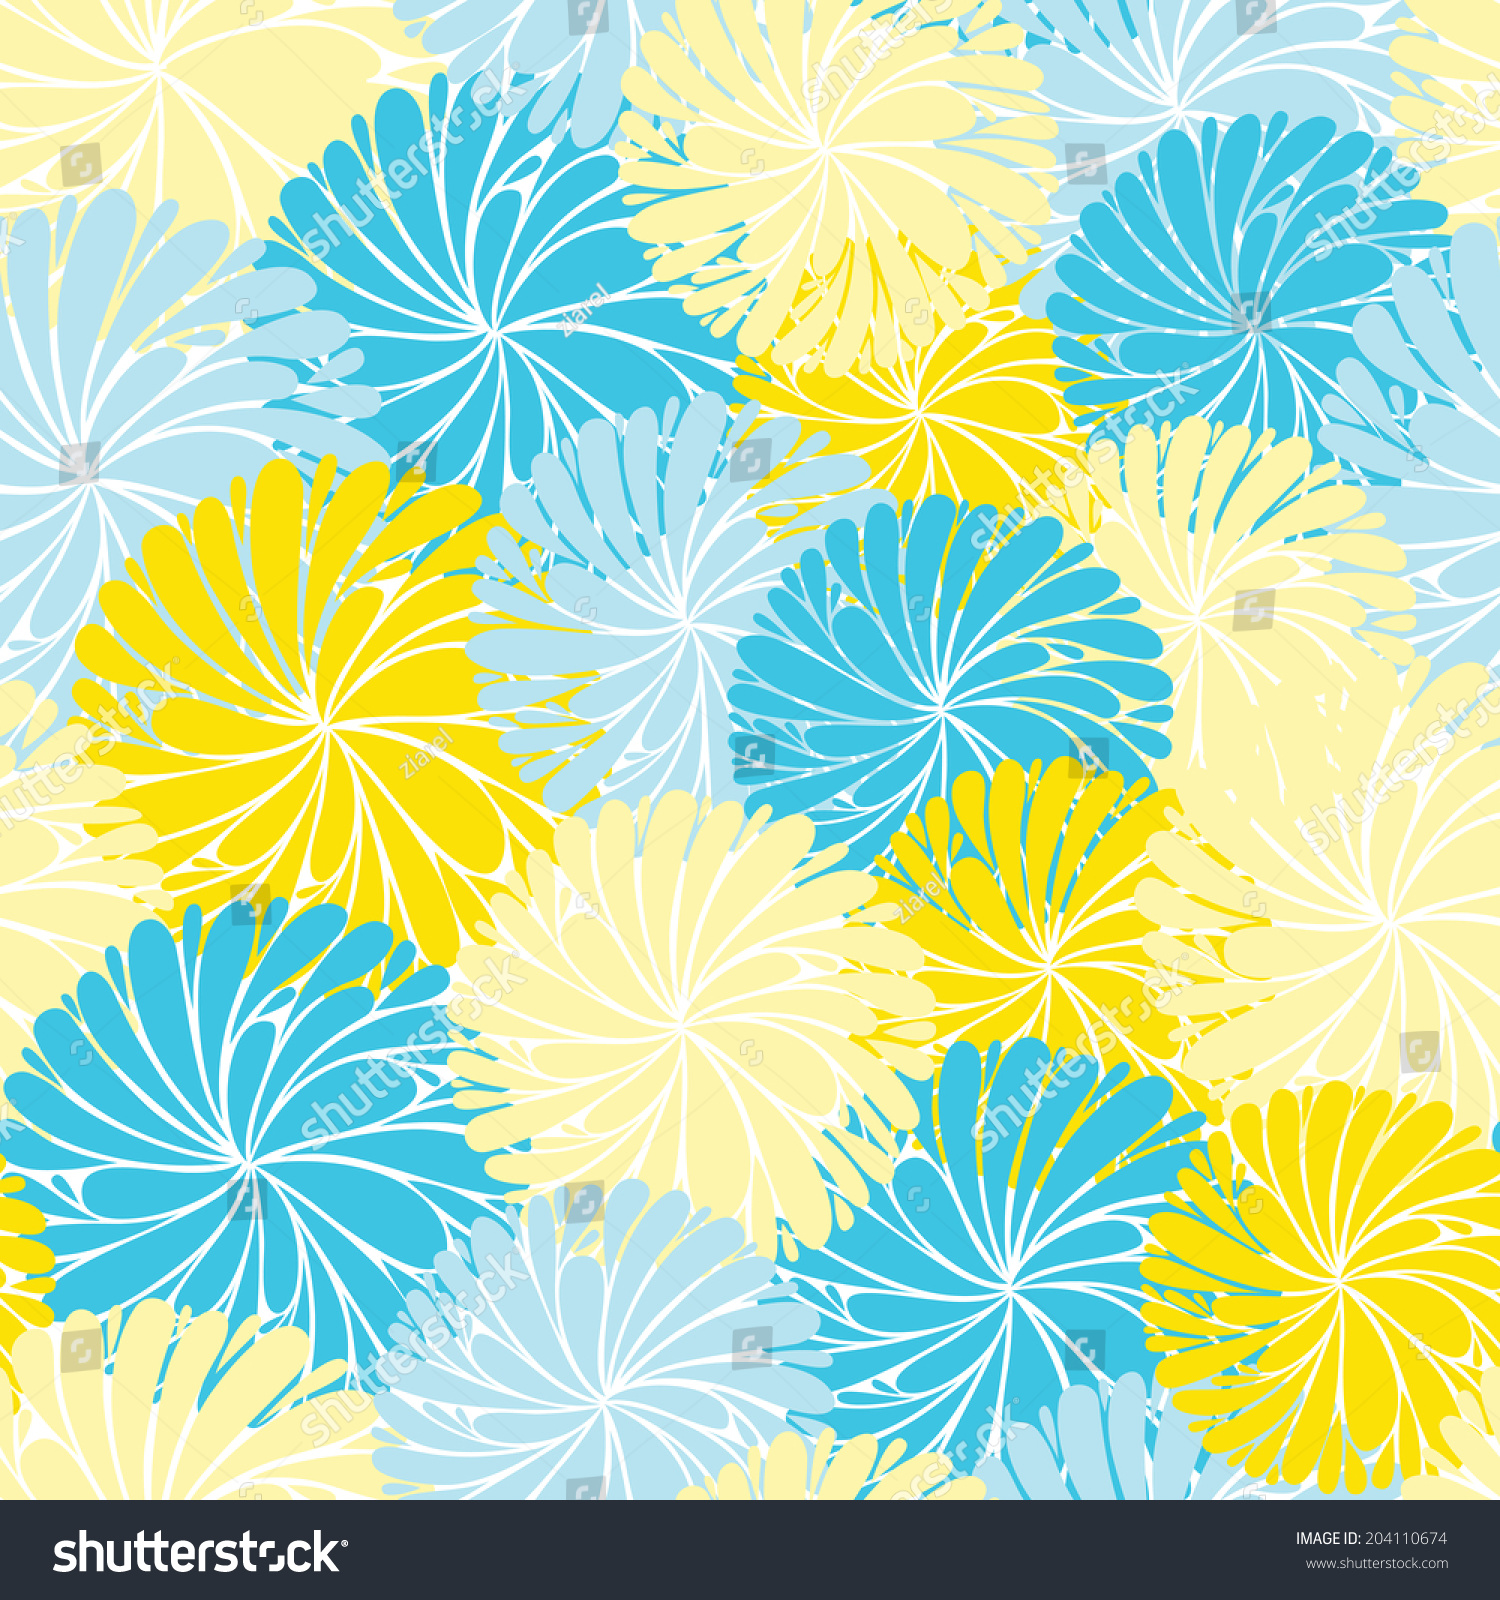 Abstract Vector Sweet Floral Seamless Wallpaper Background